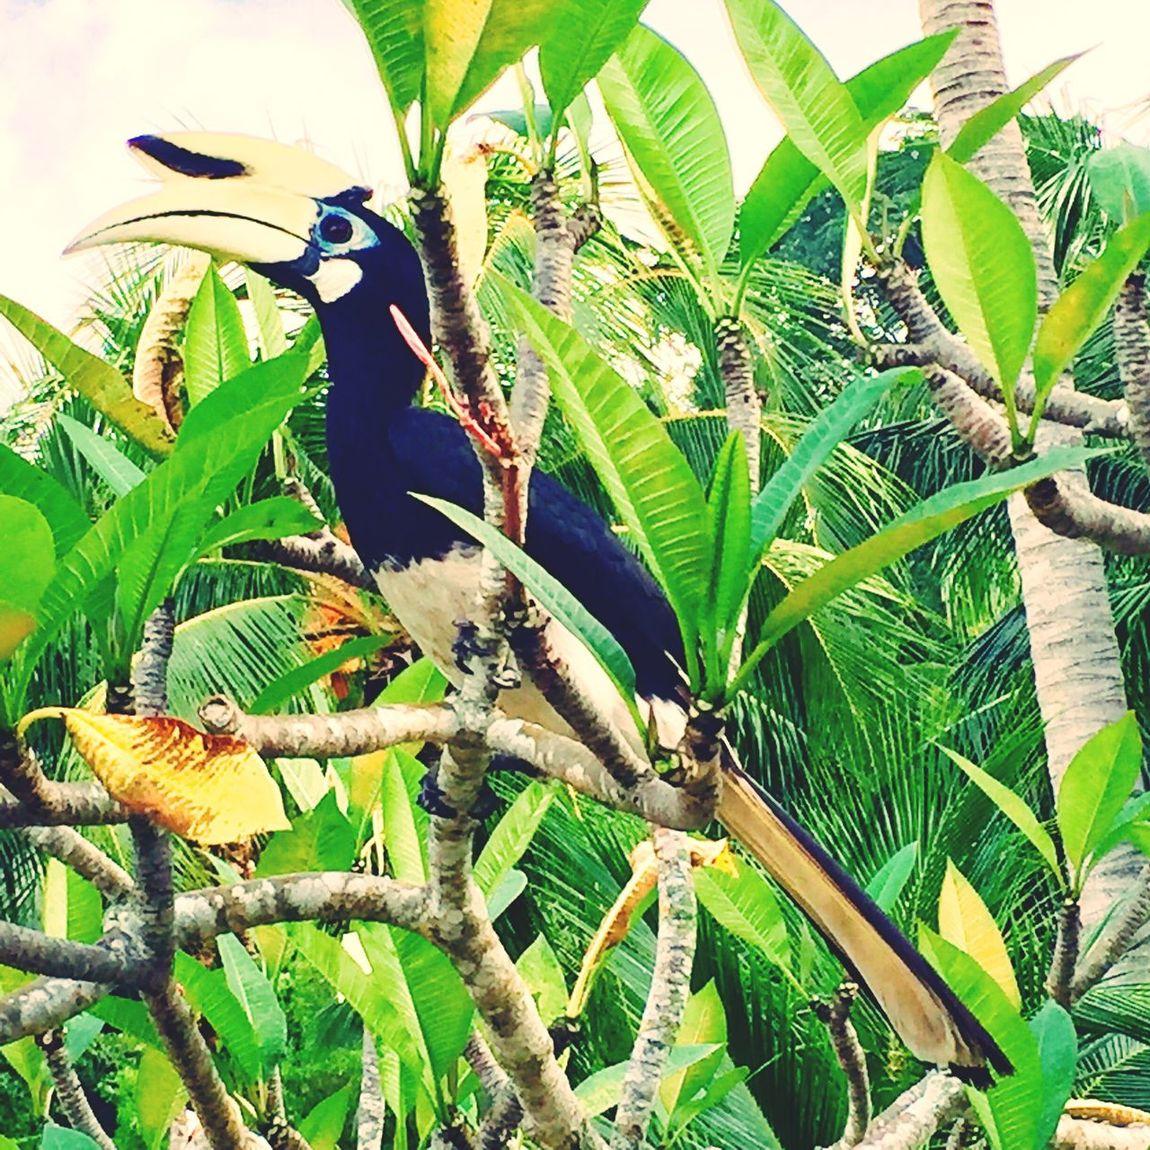 Hornbill Bird Photography Bird Tropical Climate Tropical Paradise Jungle Nature Plant Green Color Animal Themes Animals In The Wild Beauty In Nature Birds StillLifePhotography Capture The Moment IPhoneography Pankor Laut